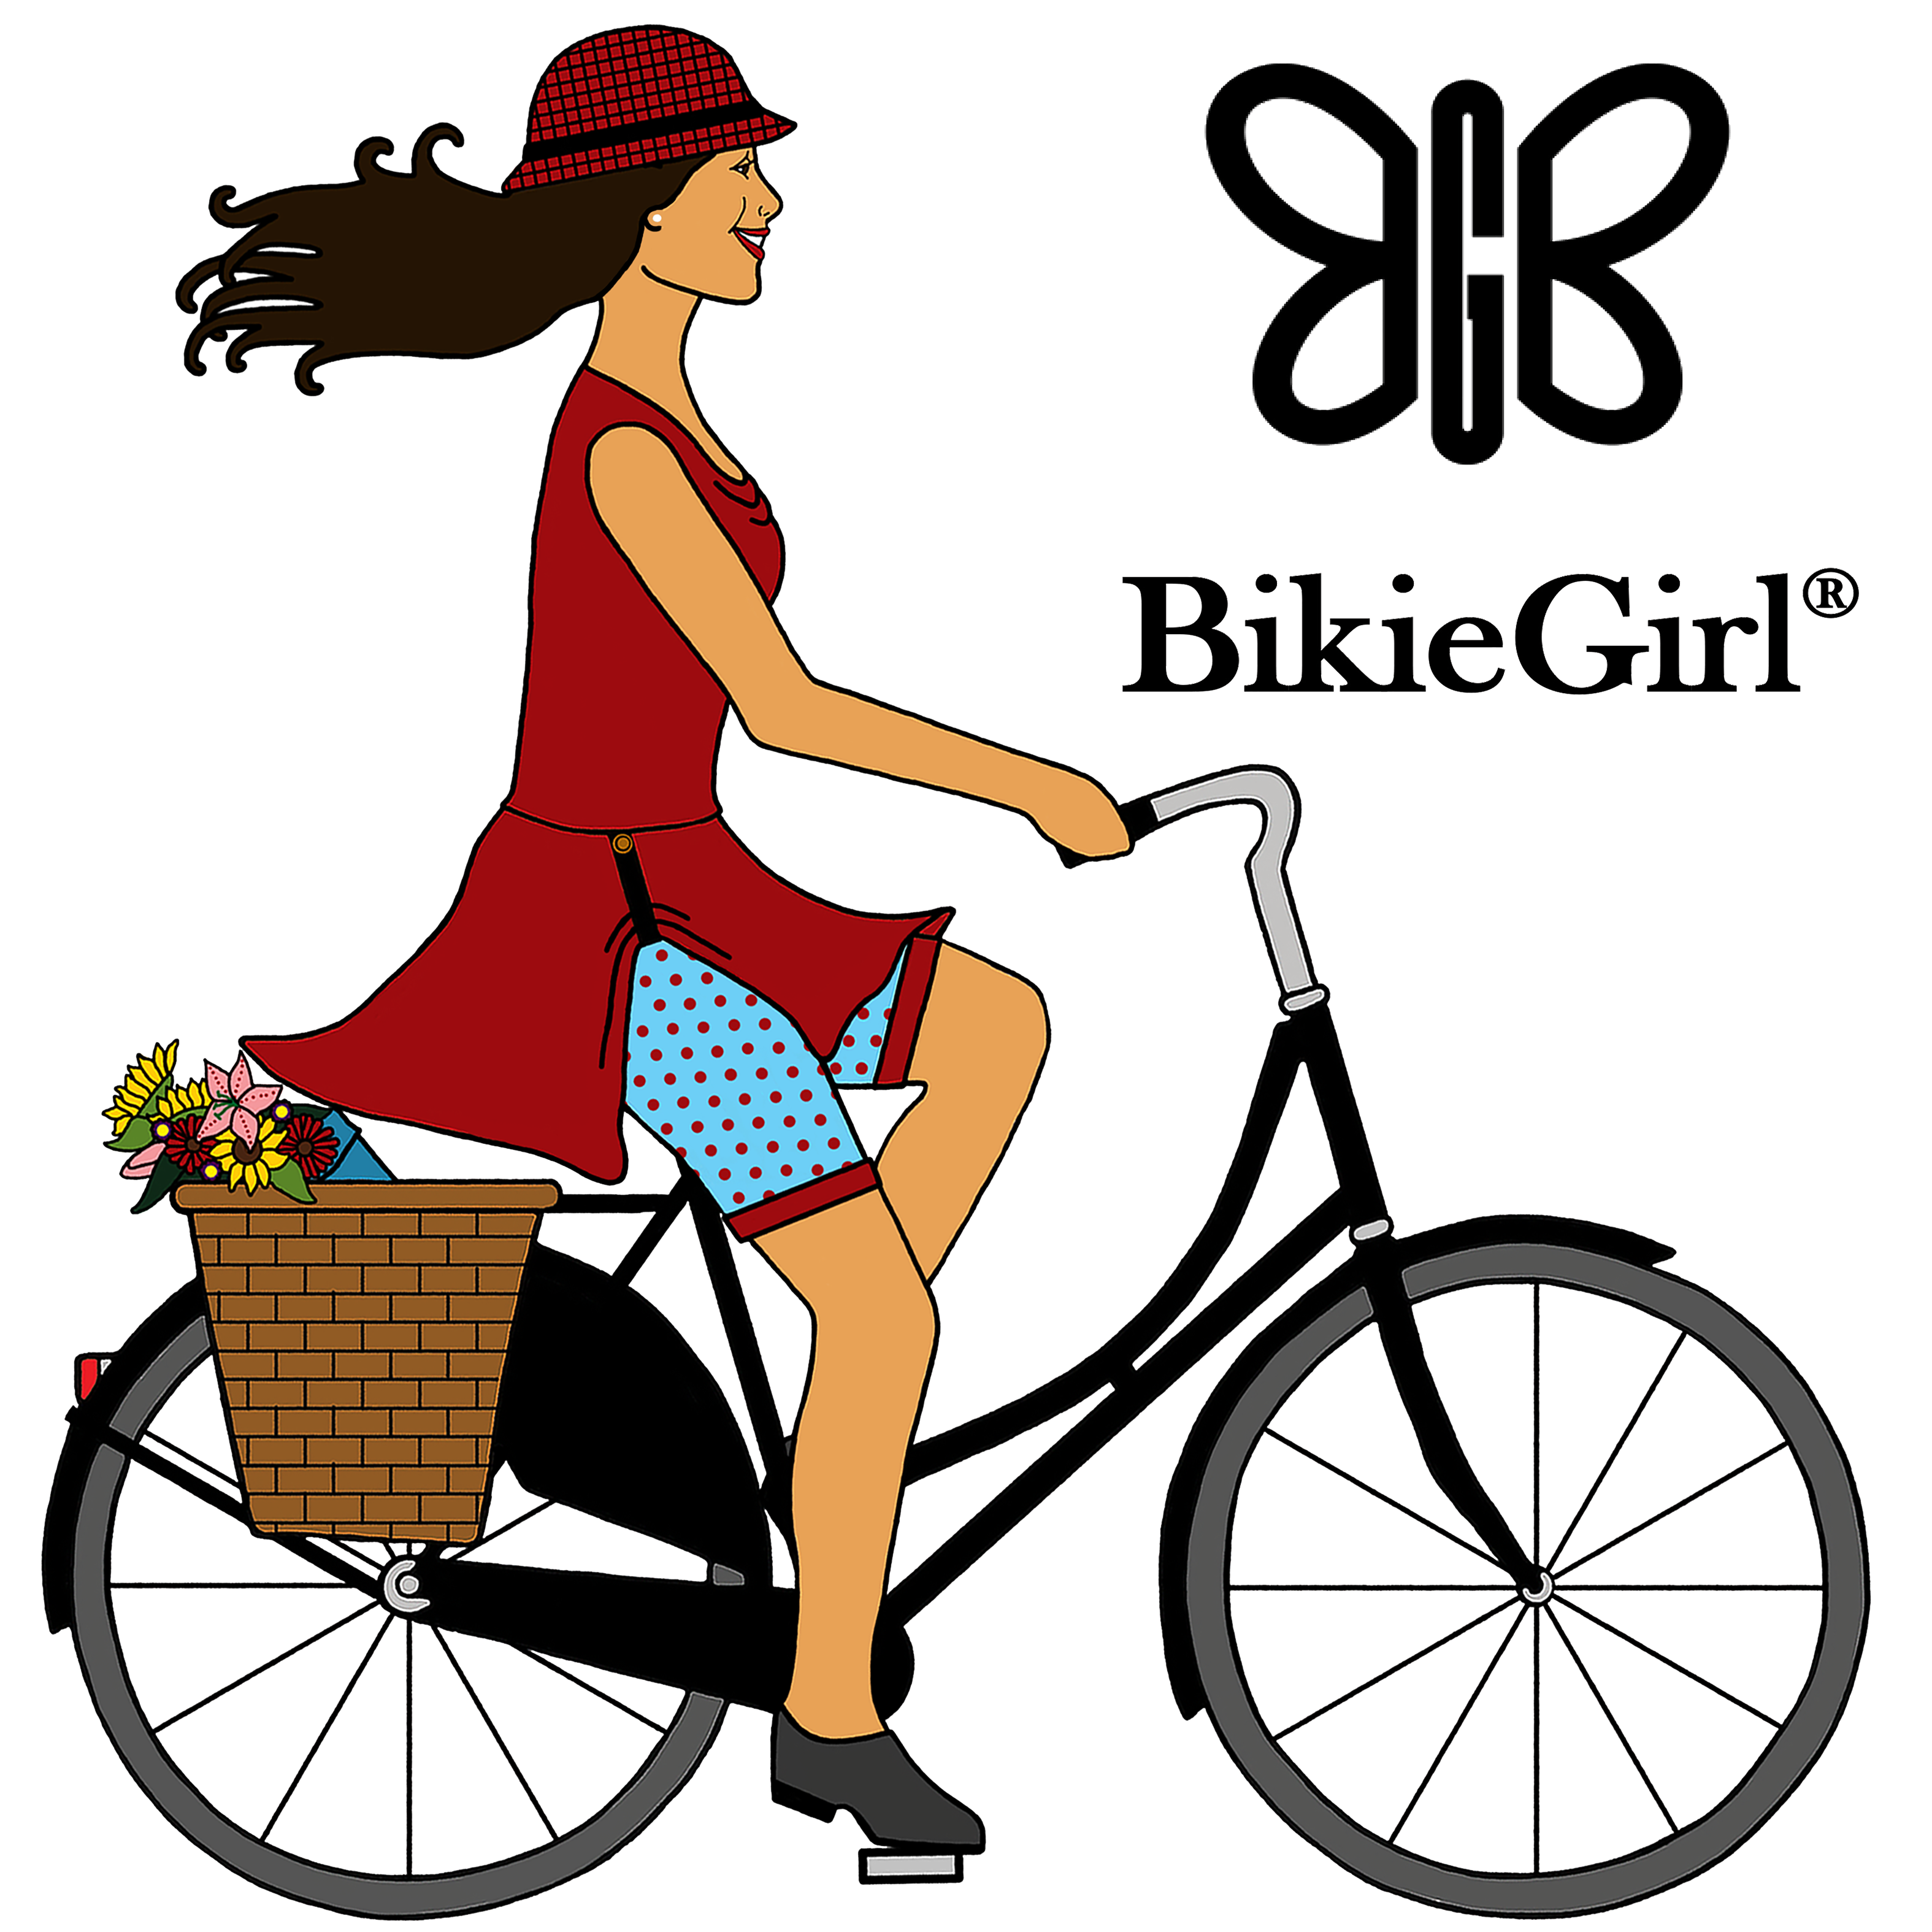 bikie girl final 111618 with text and butterfly